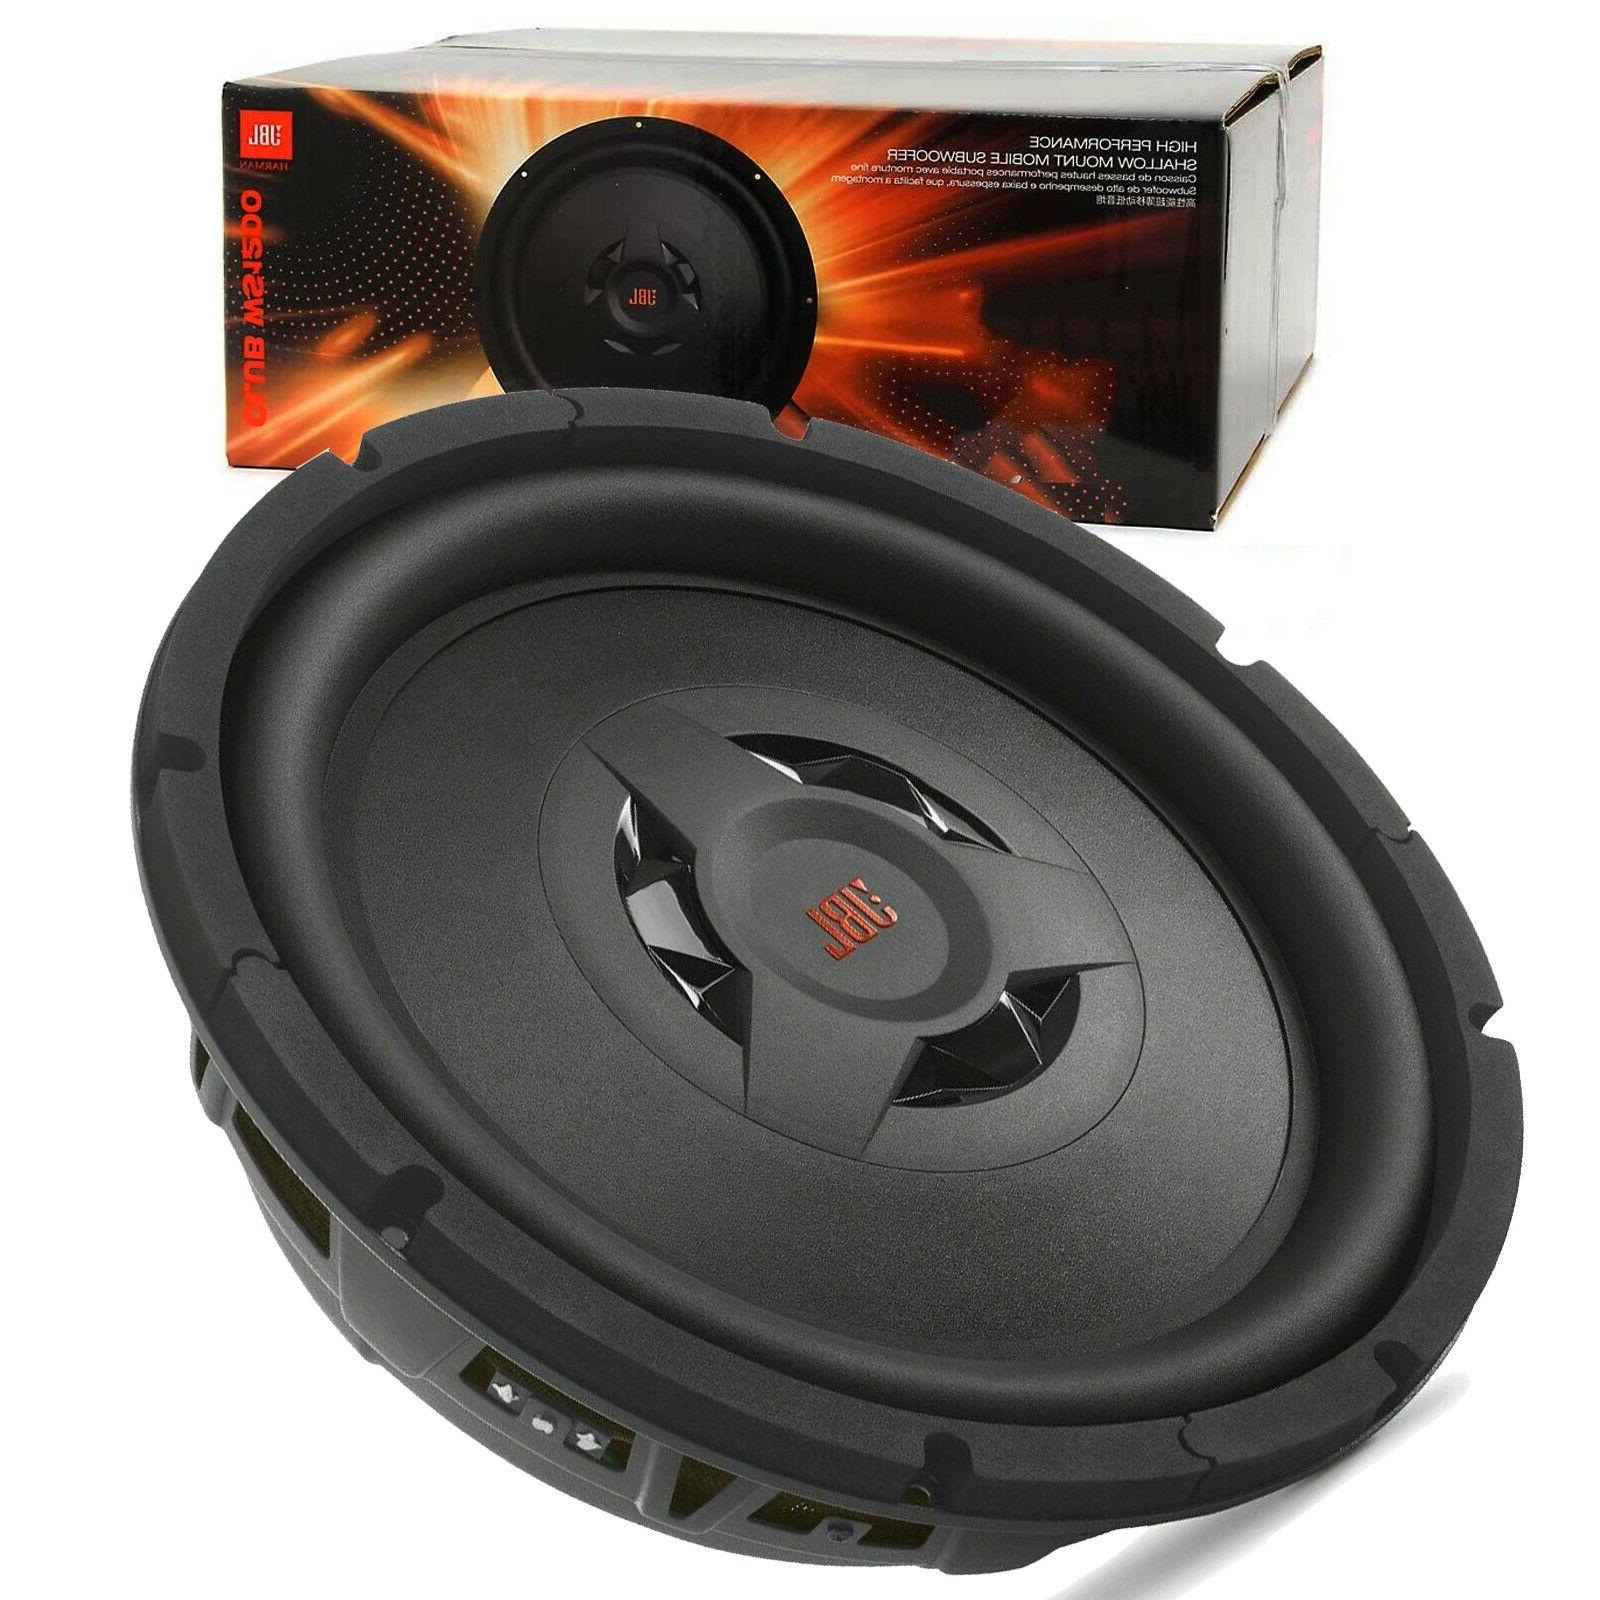 New JBL WS1200 2000 Watts or Shallow Mount Pair